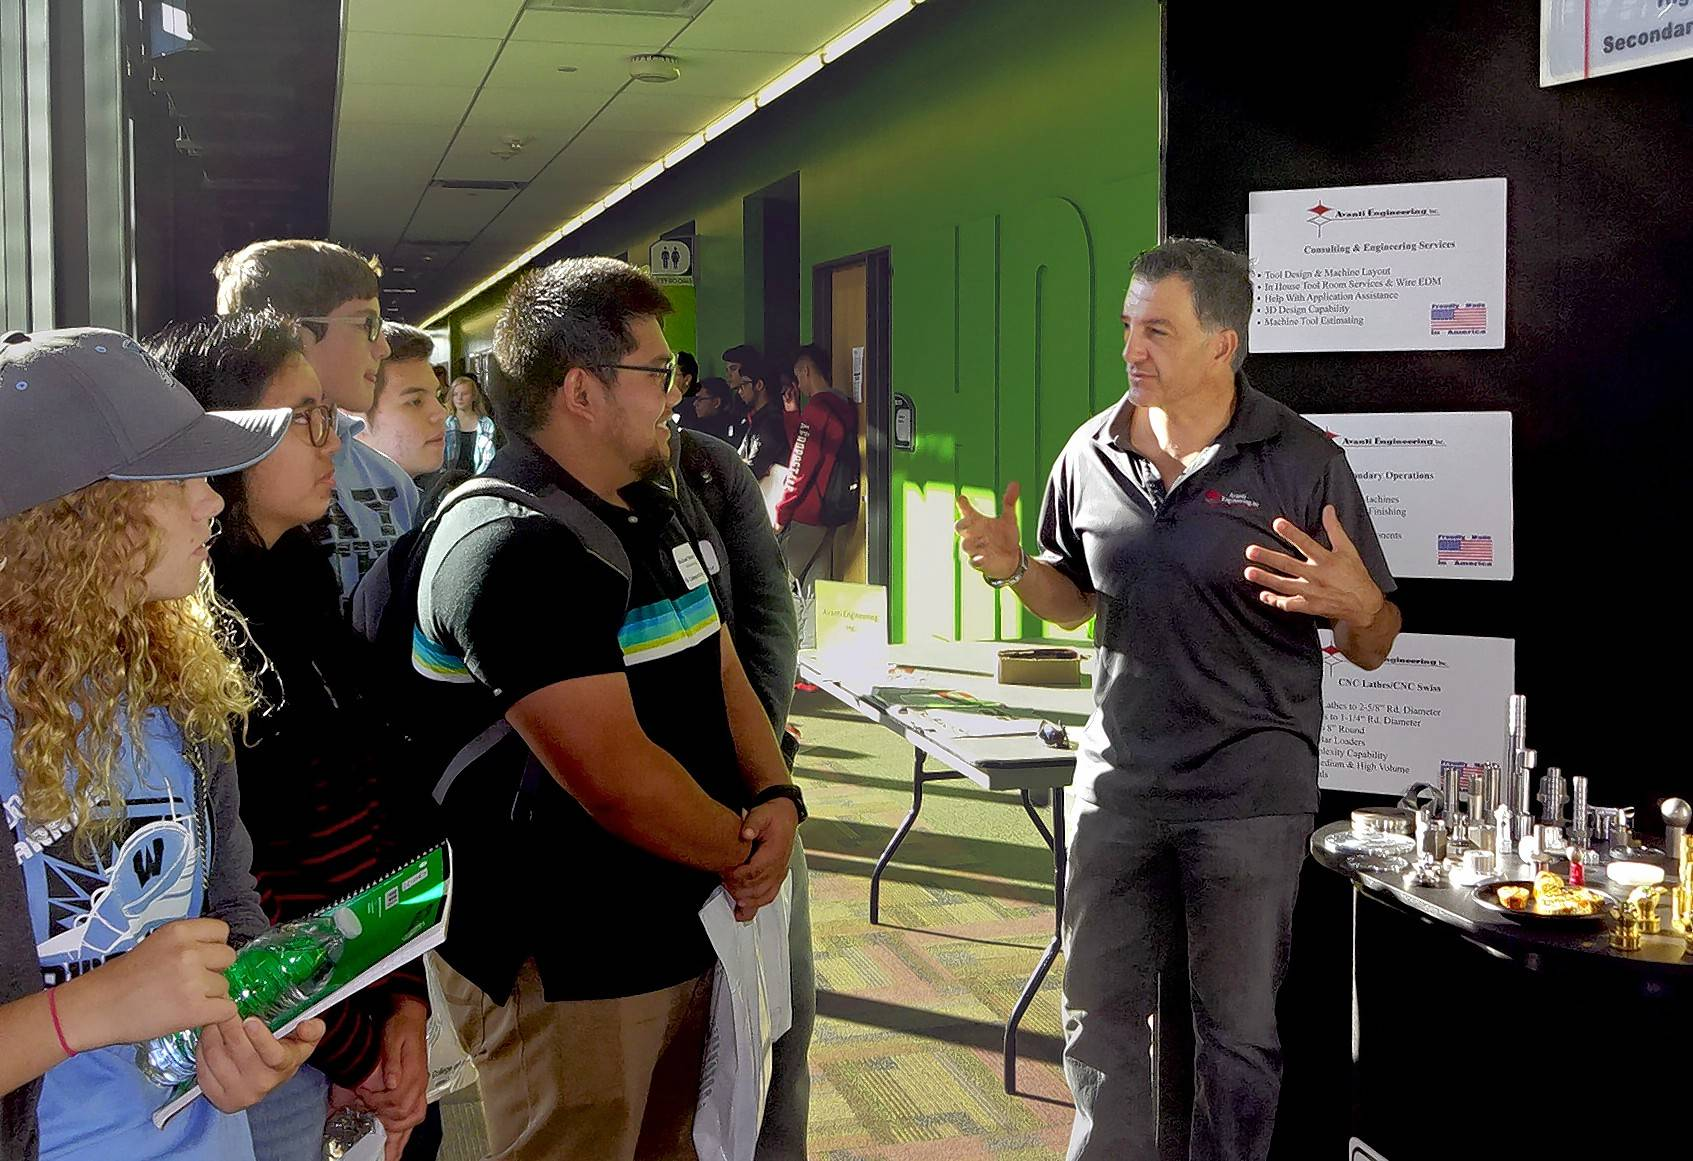 Nick Bratta of Avanti Engineering in Glendale Heights talked to high school students about opportunities in the precision manufacturing industry at the recent Manufacturing and Engineering Technology Expo at College of DuPage.